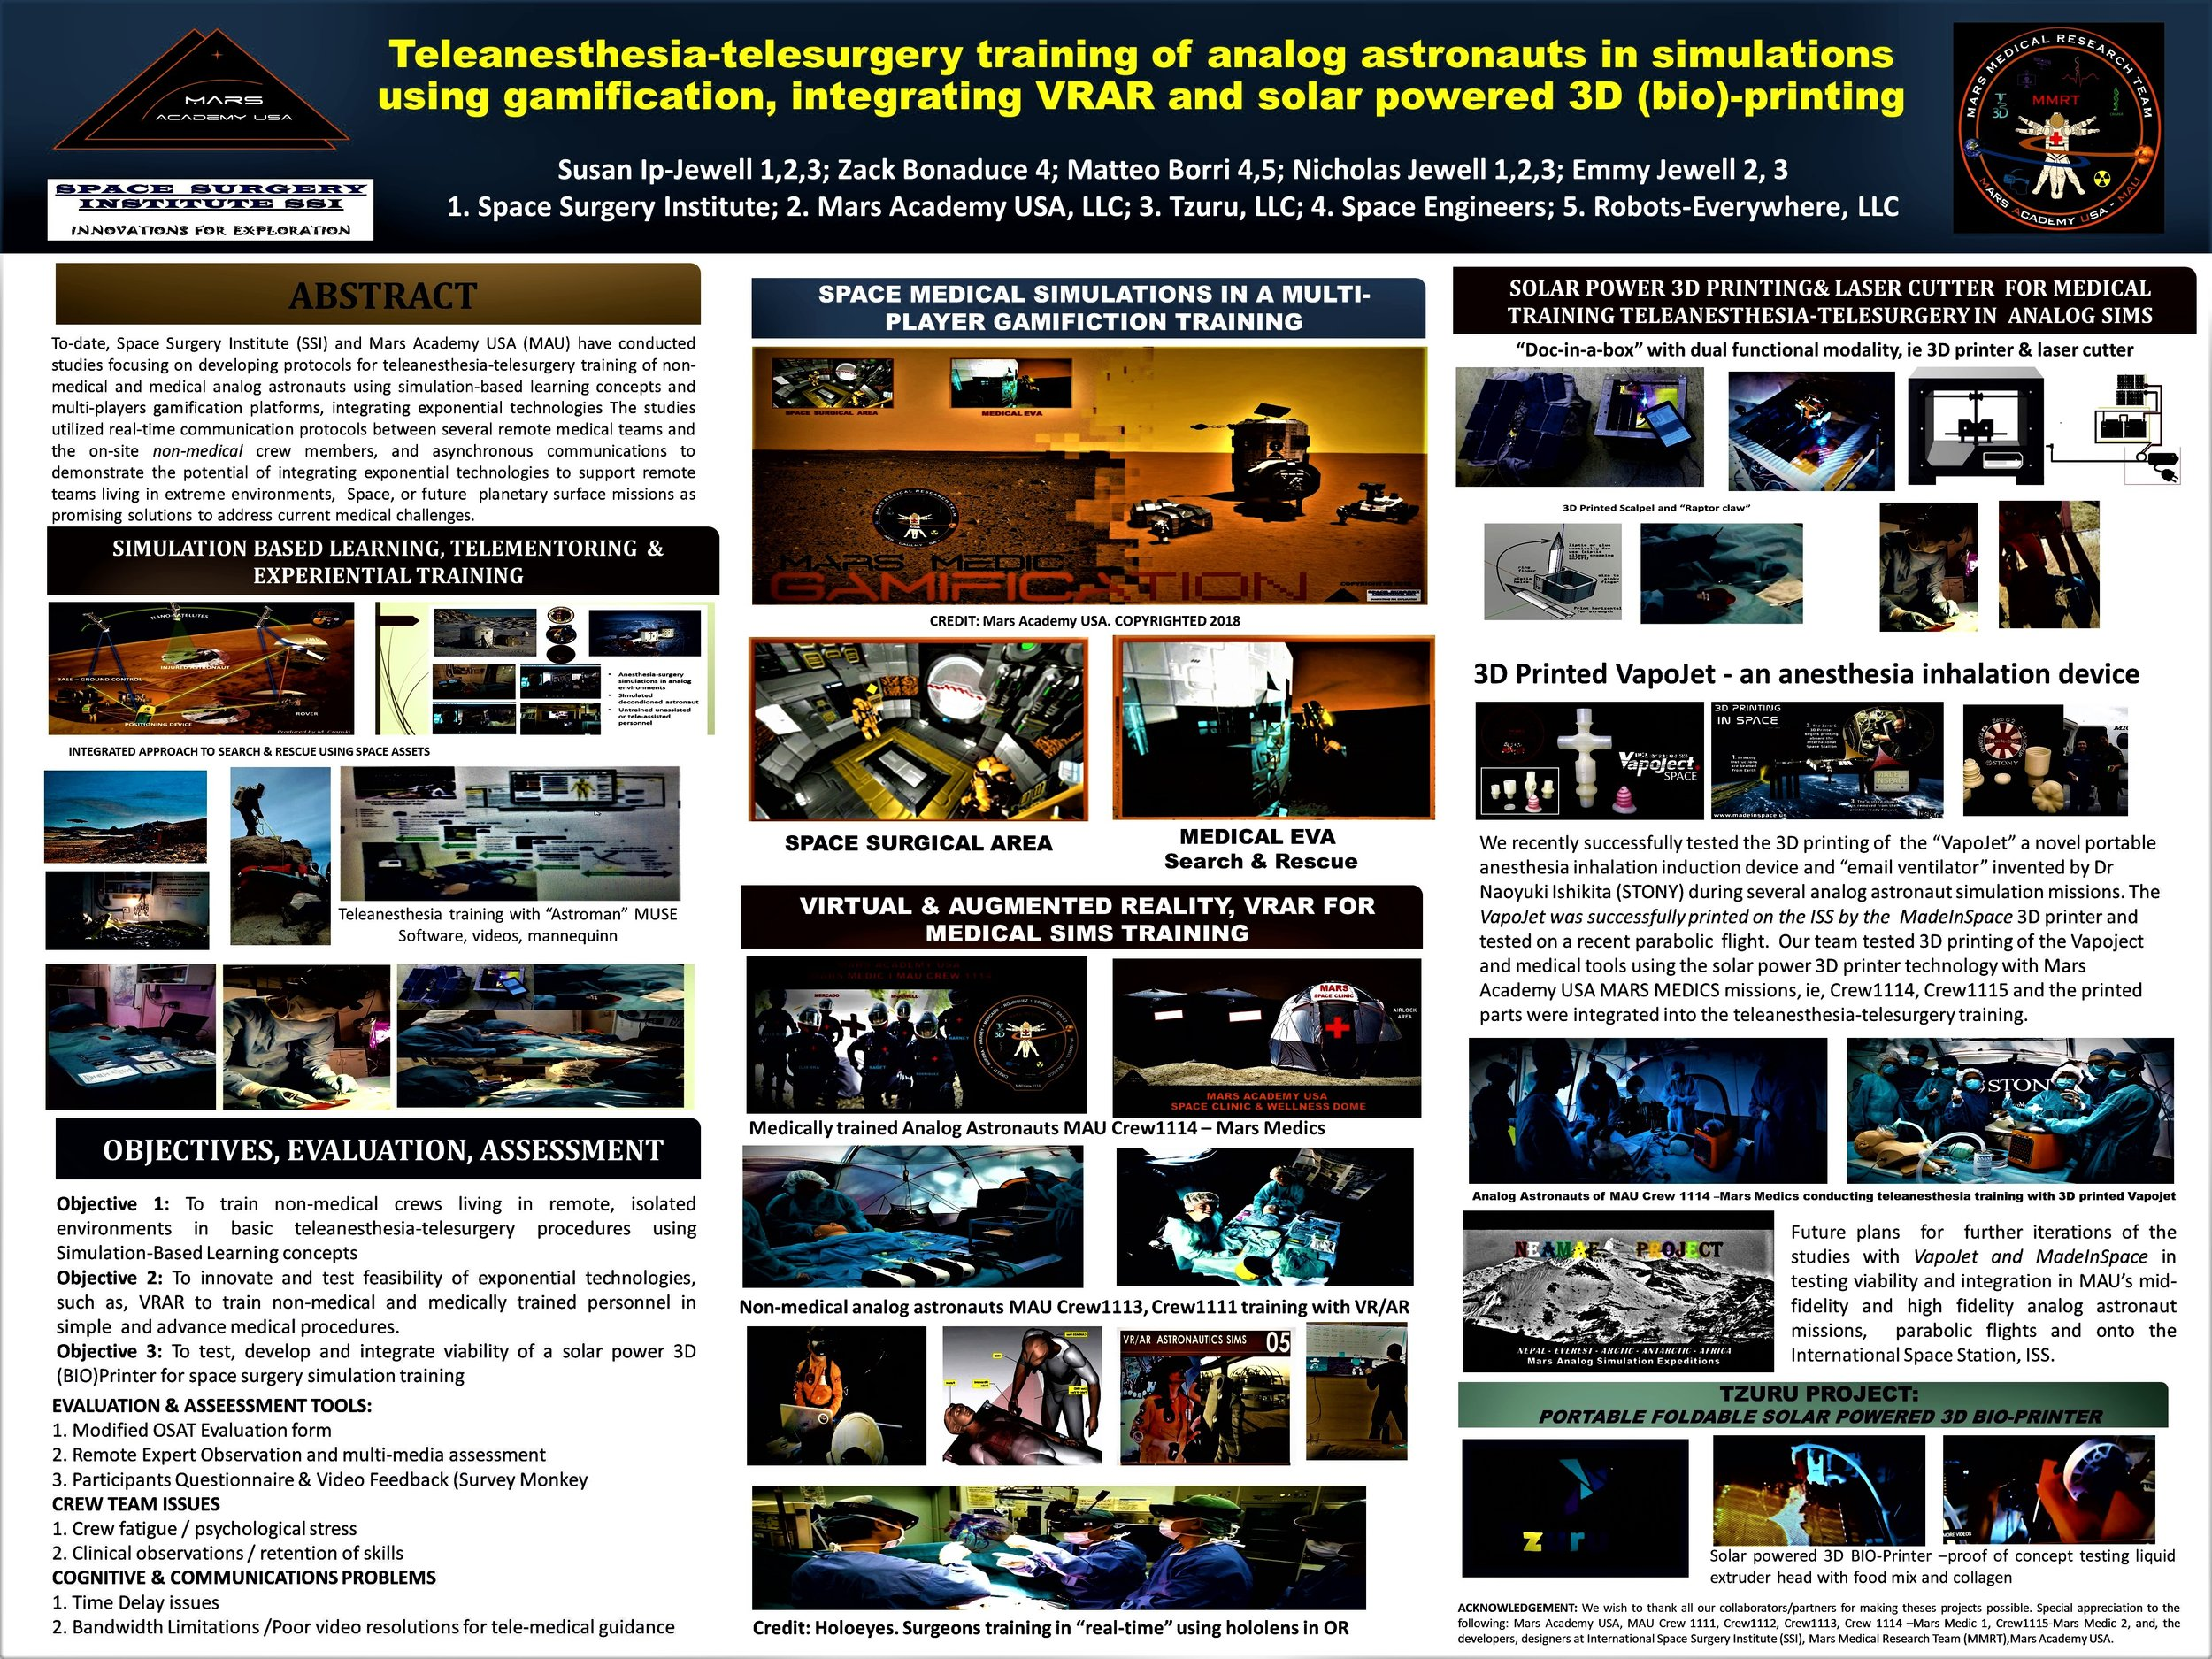 Teleannesthesia-telesurgery-Gamification-SolarPower3DBIOPrint-poster-ONLY-edited.jpg